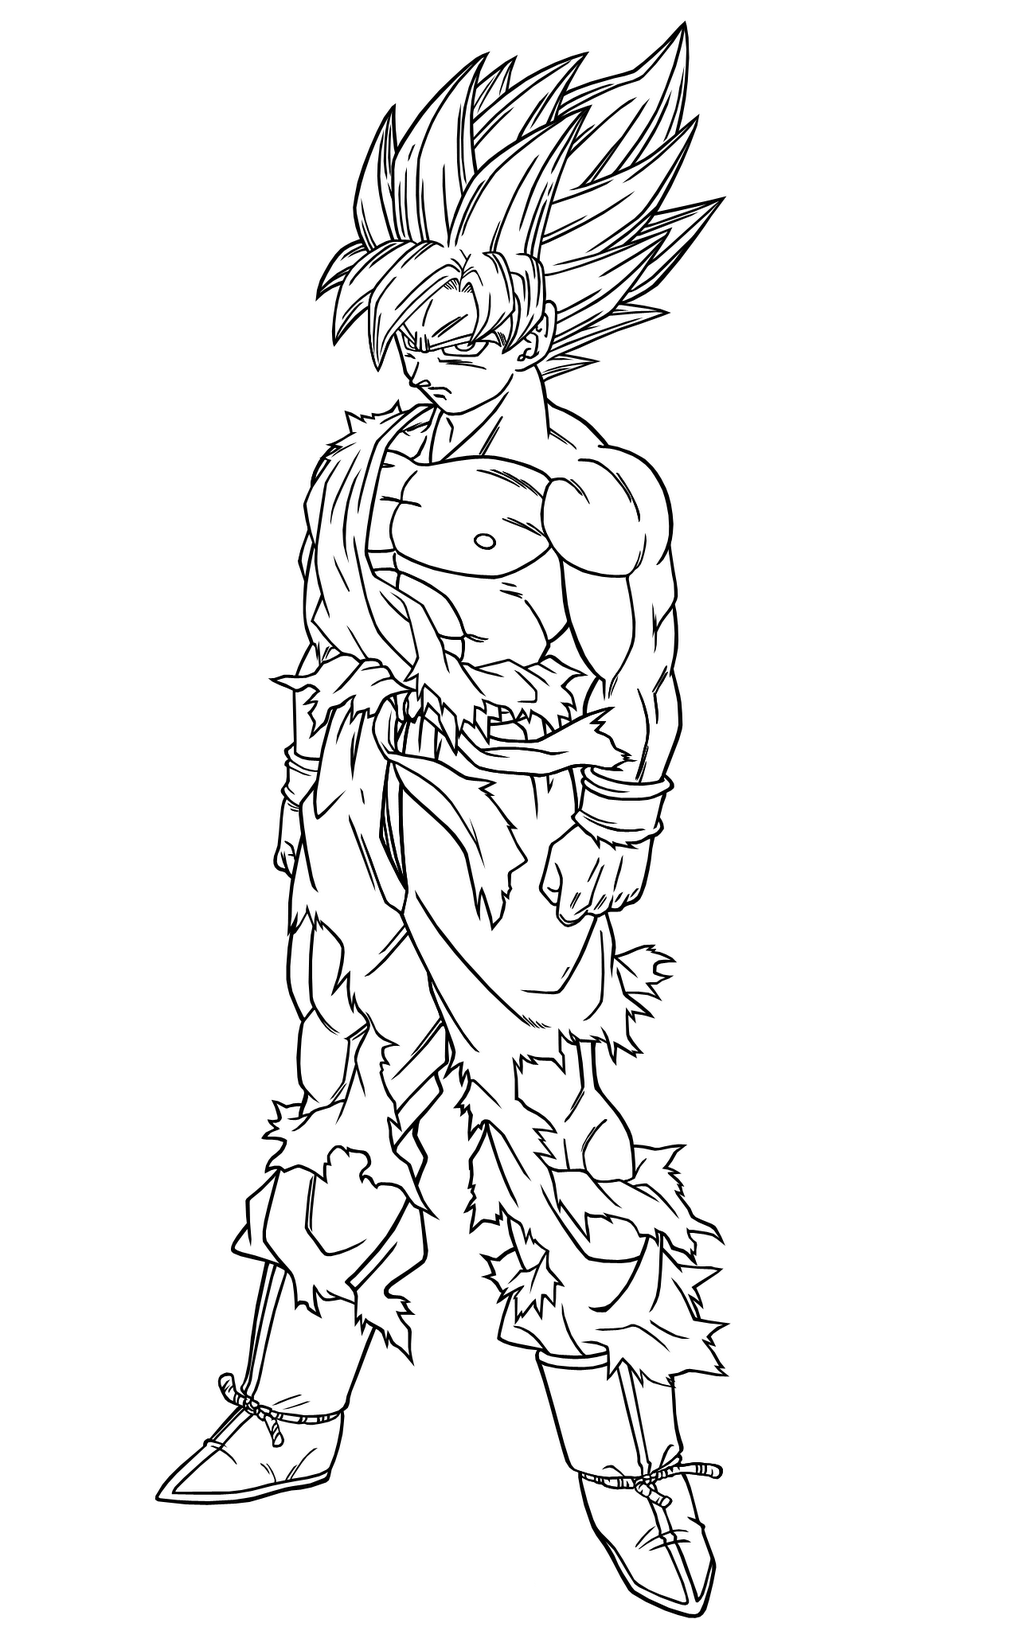 Facile dragon ball goku super sayian contre freezer coloriage dragon ball z coloriages pour - Dessin dragon ball z facile ...